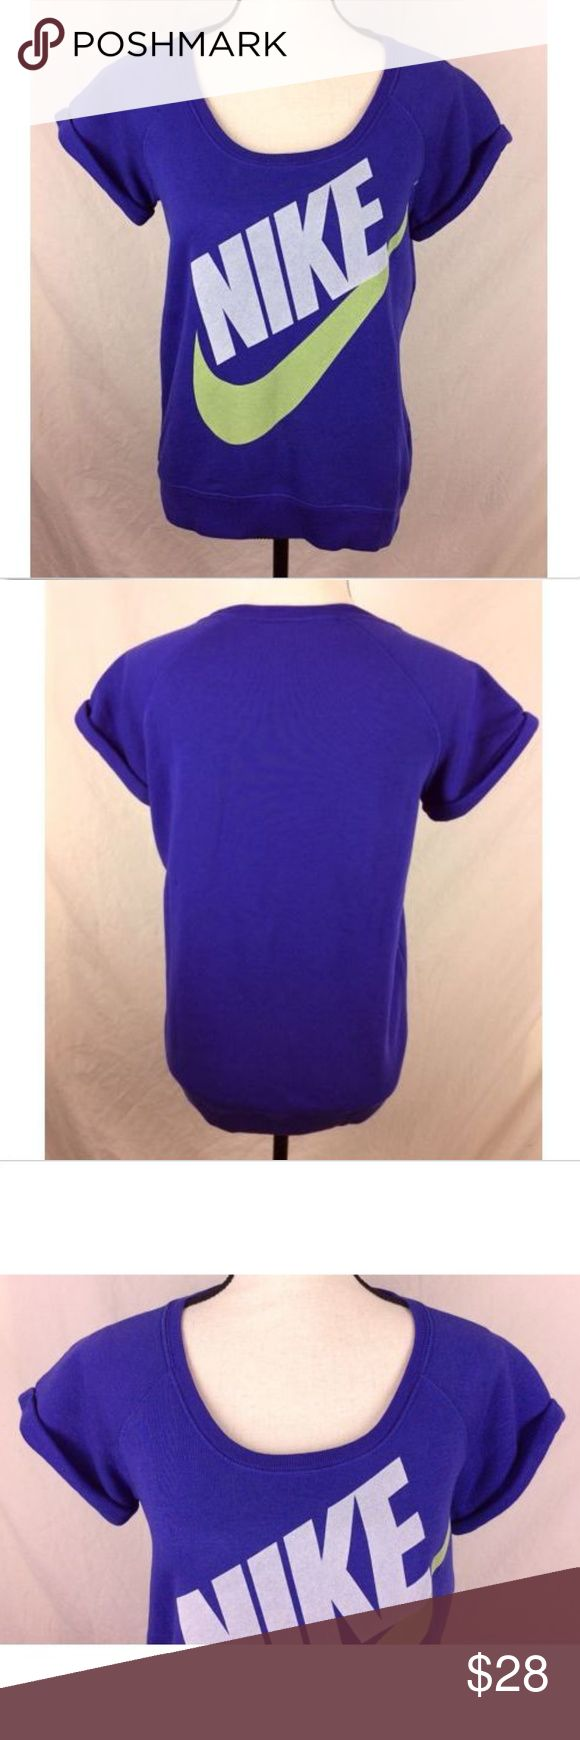 "NIke Short Sleeve Sweatshirt Purple Medium Women's Nike Short Sleeve Sweatshirt size Medium.  Color is purple with gray Nike & green swoosh. Good condition.   Measurements laying flat Chest 18.5"" Length 24"" front, 25"" back Nike Tops Sweatshirts & Hoodies"